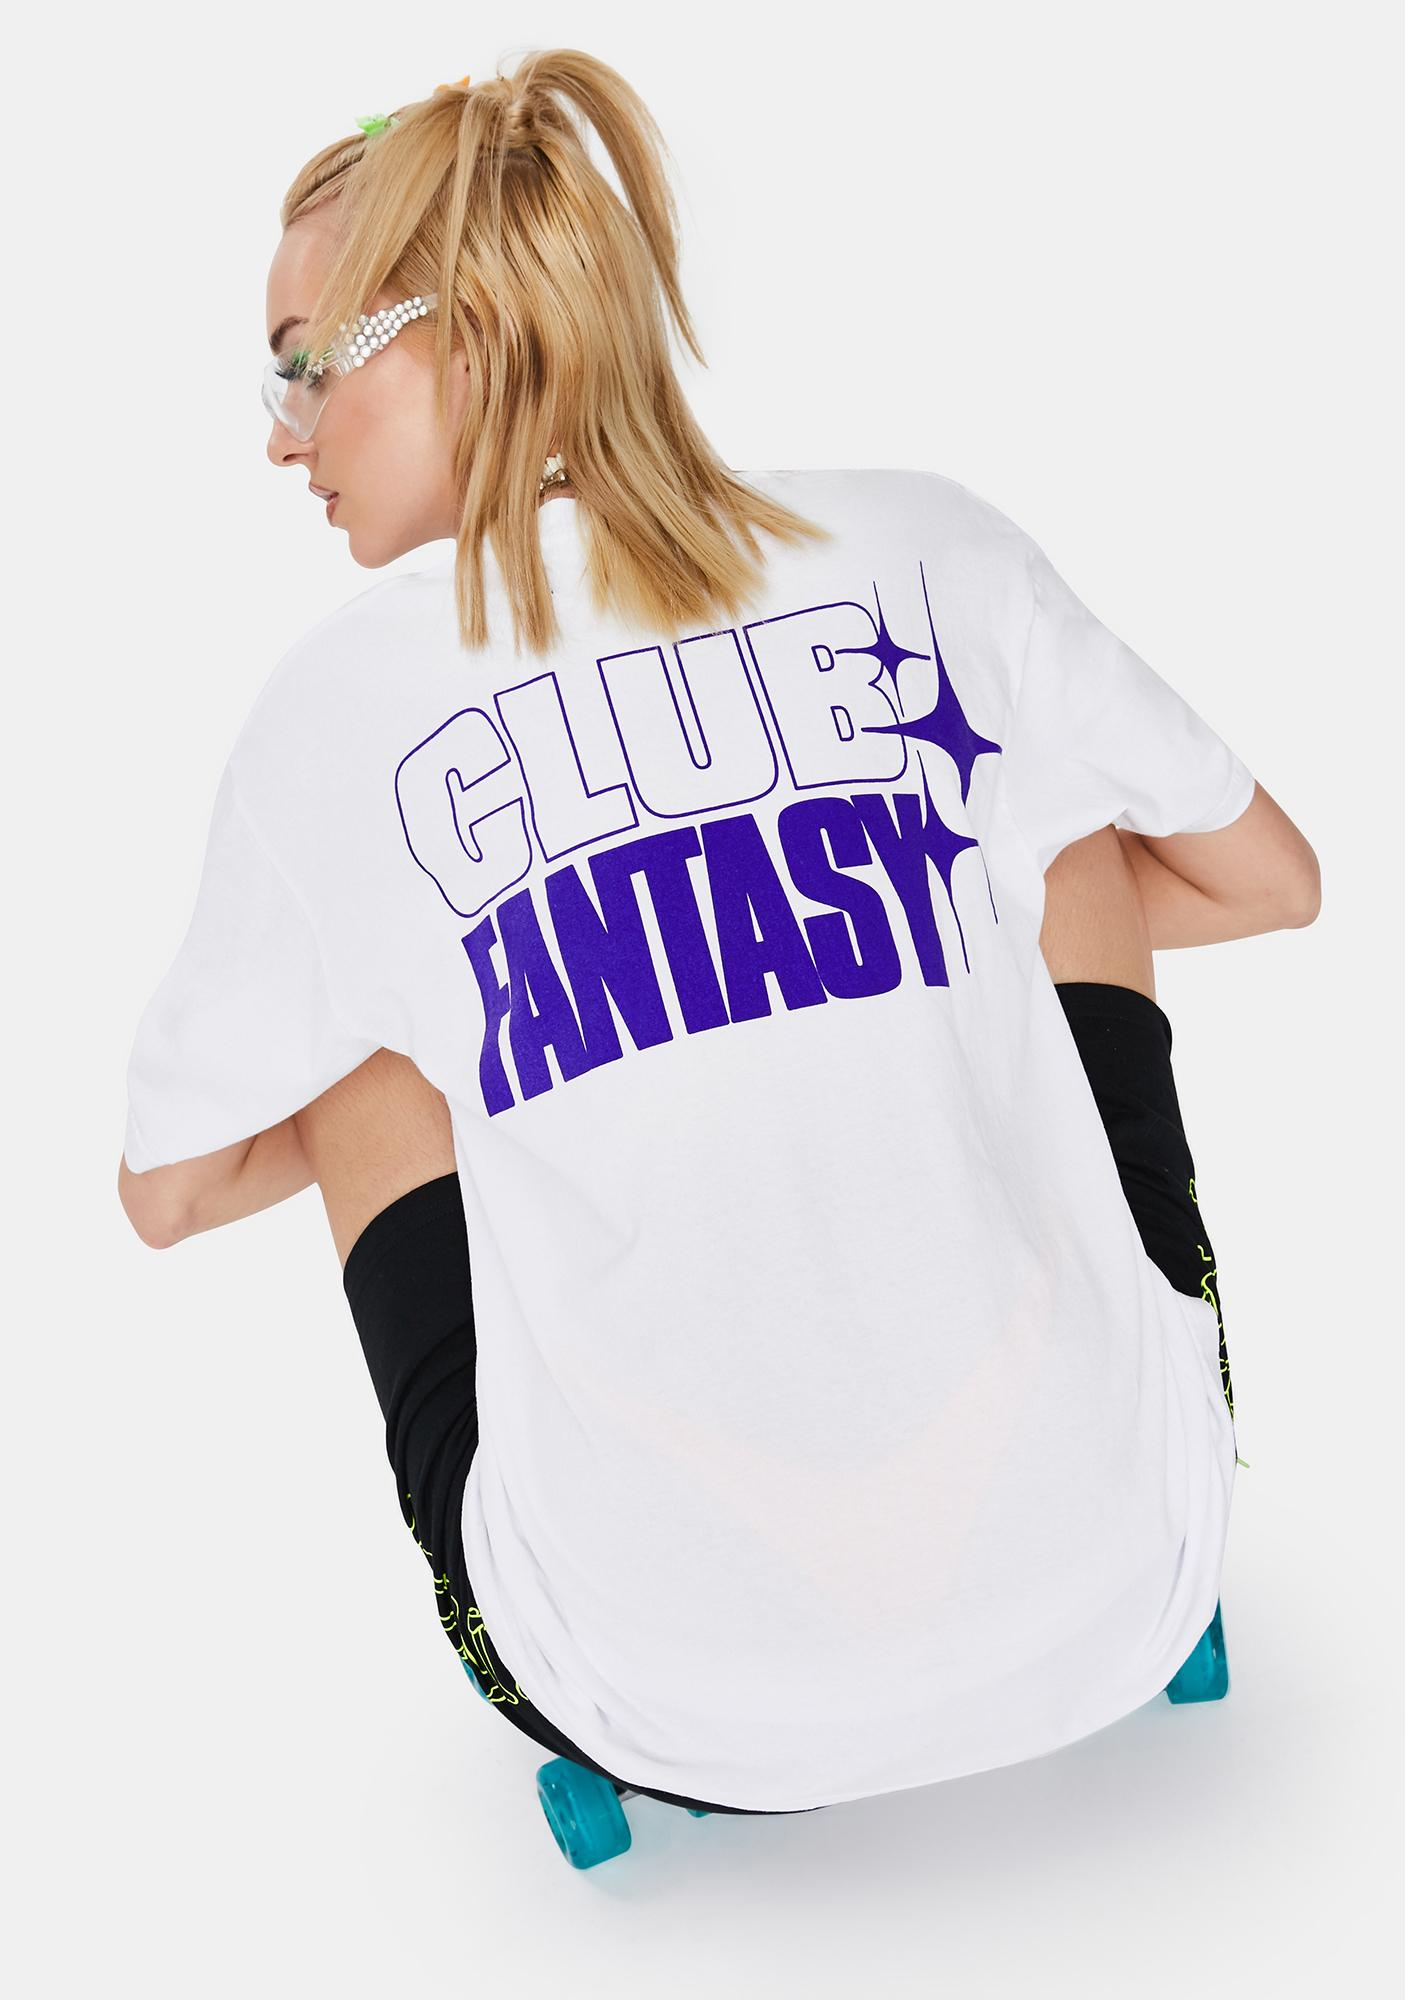 Club Fantasy After Hours V2 Graphic Tee